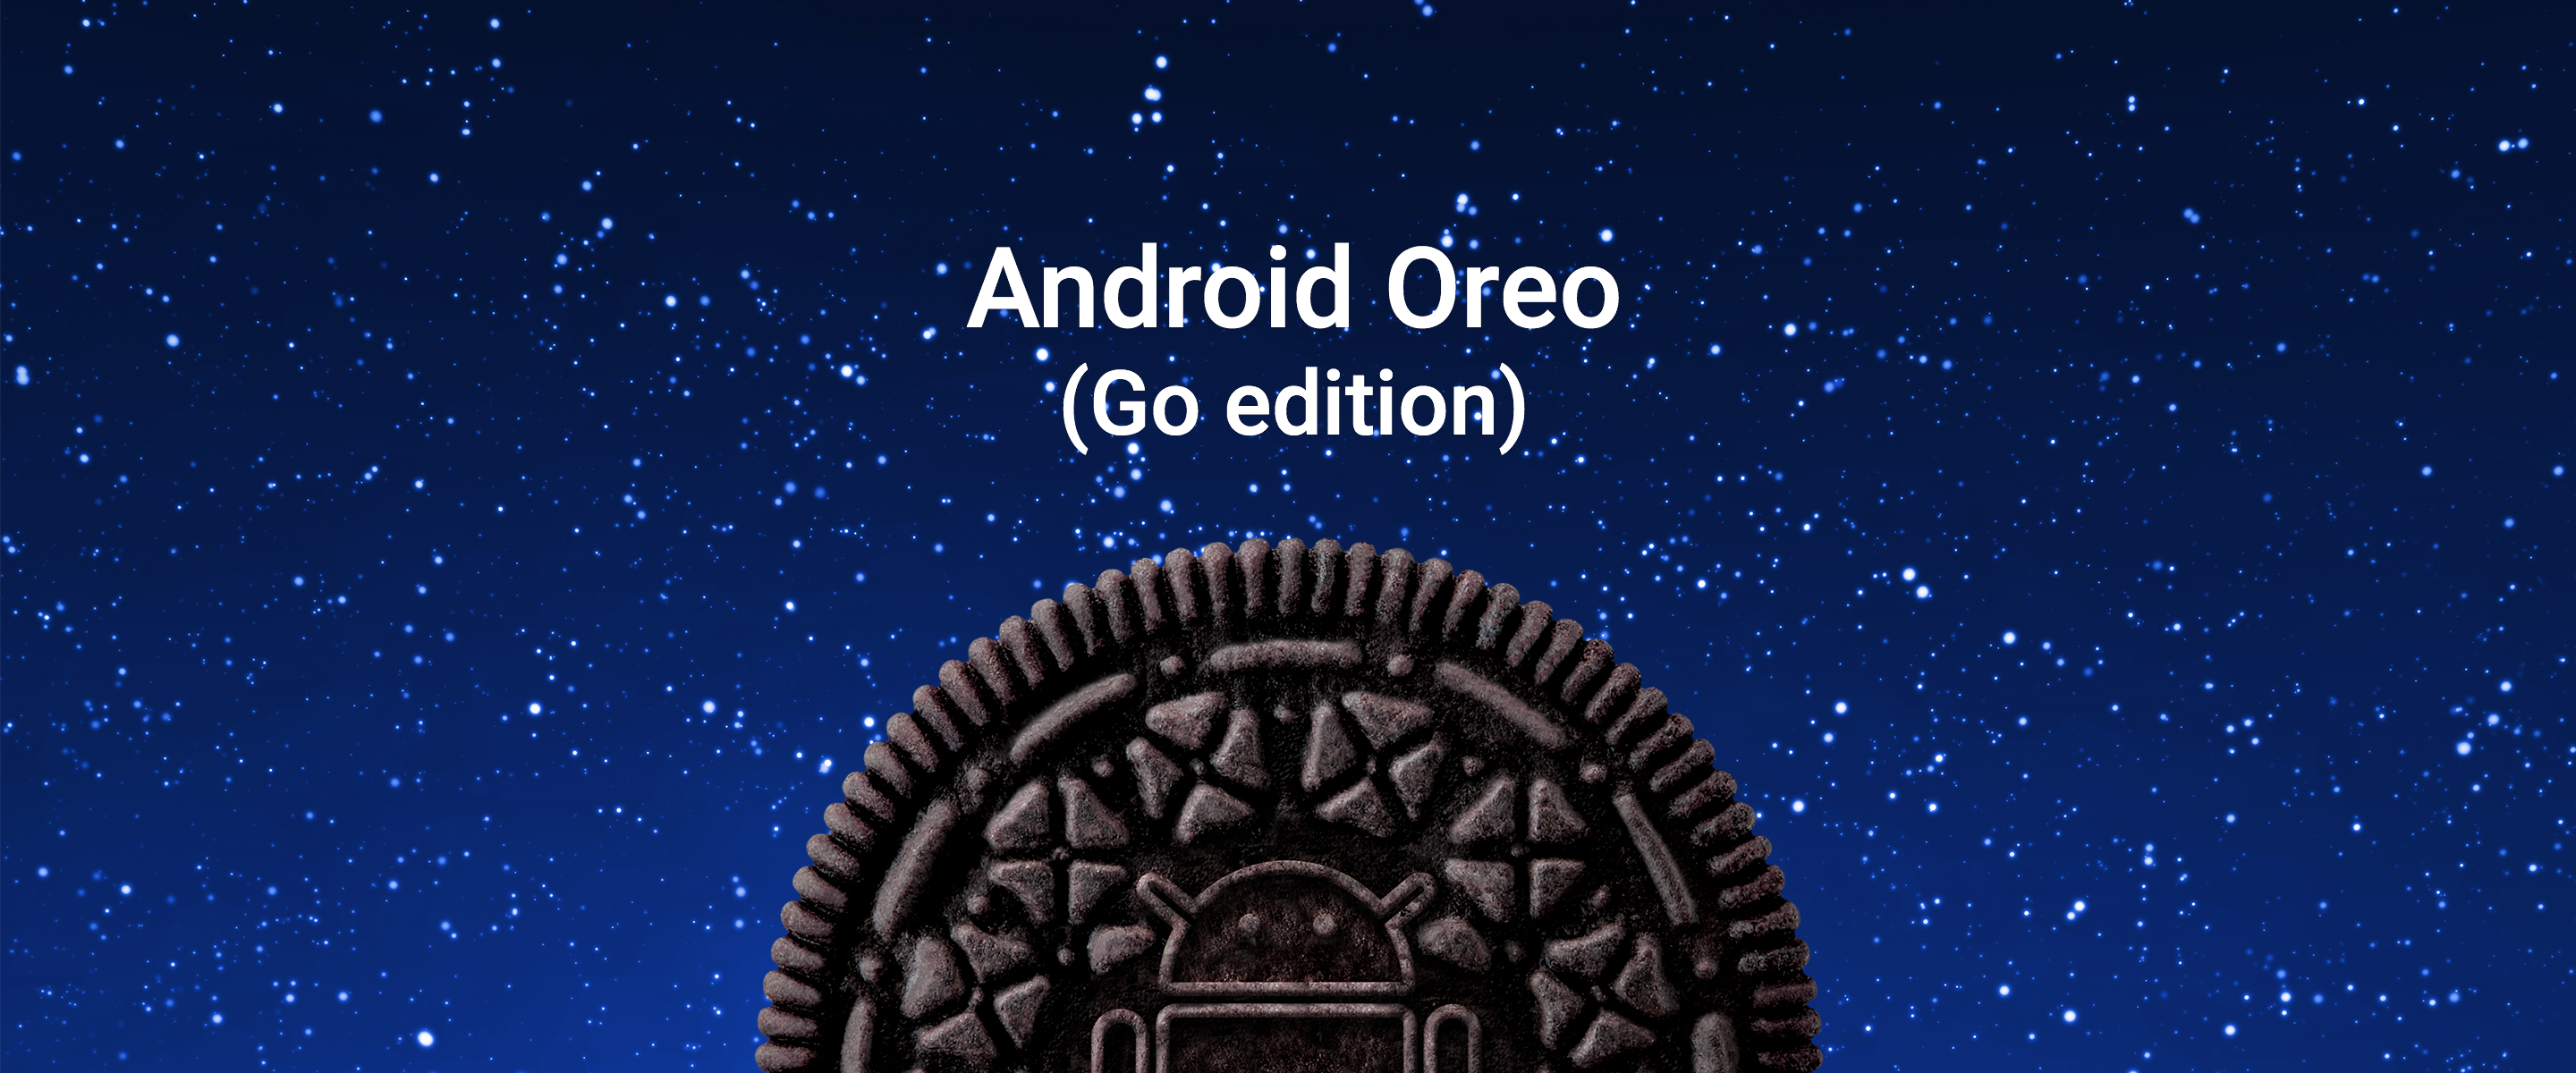 Introducing Android Oreo (Go edition) with the release of Android 8 1